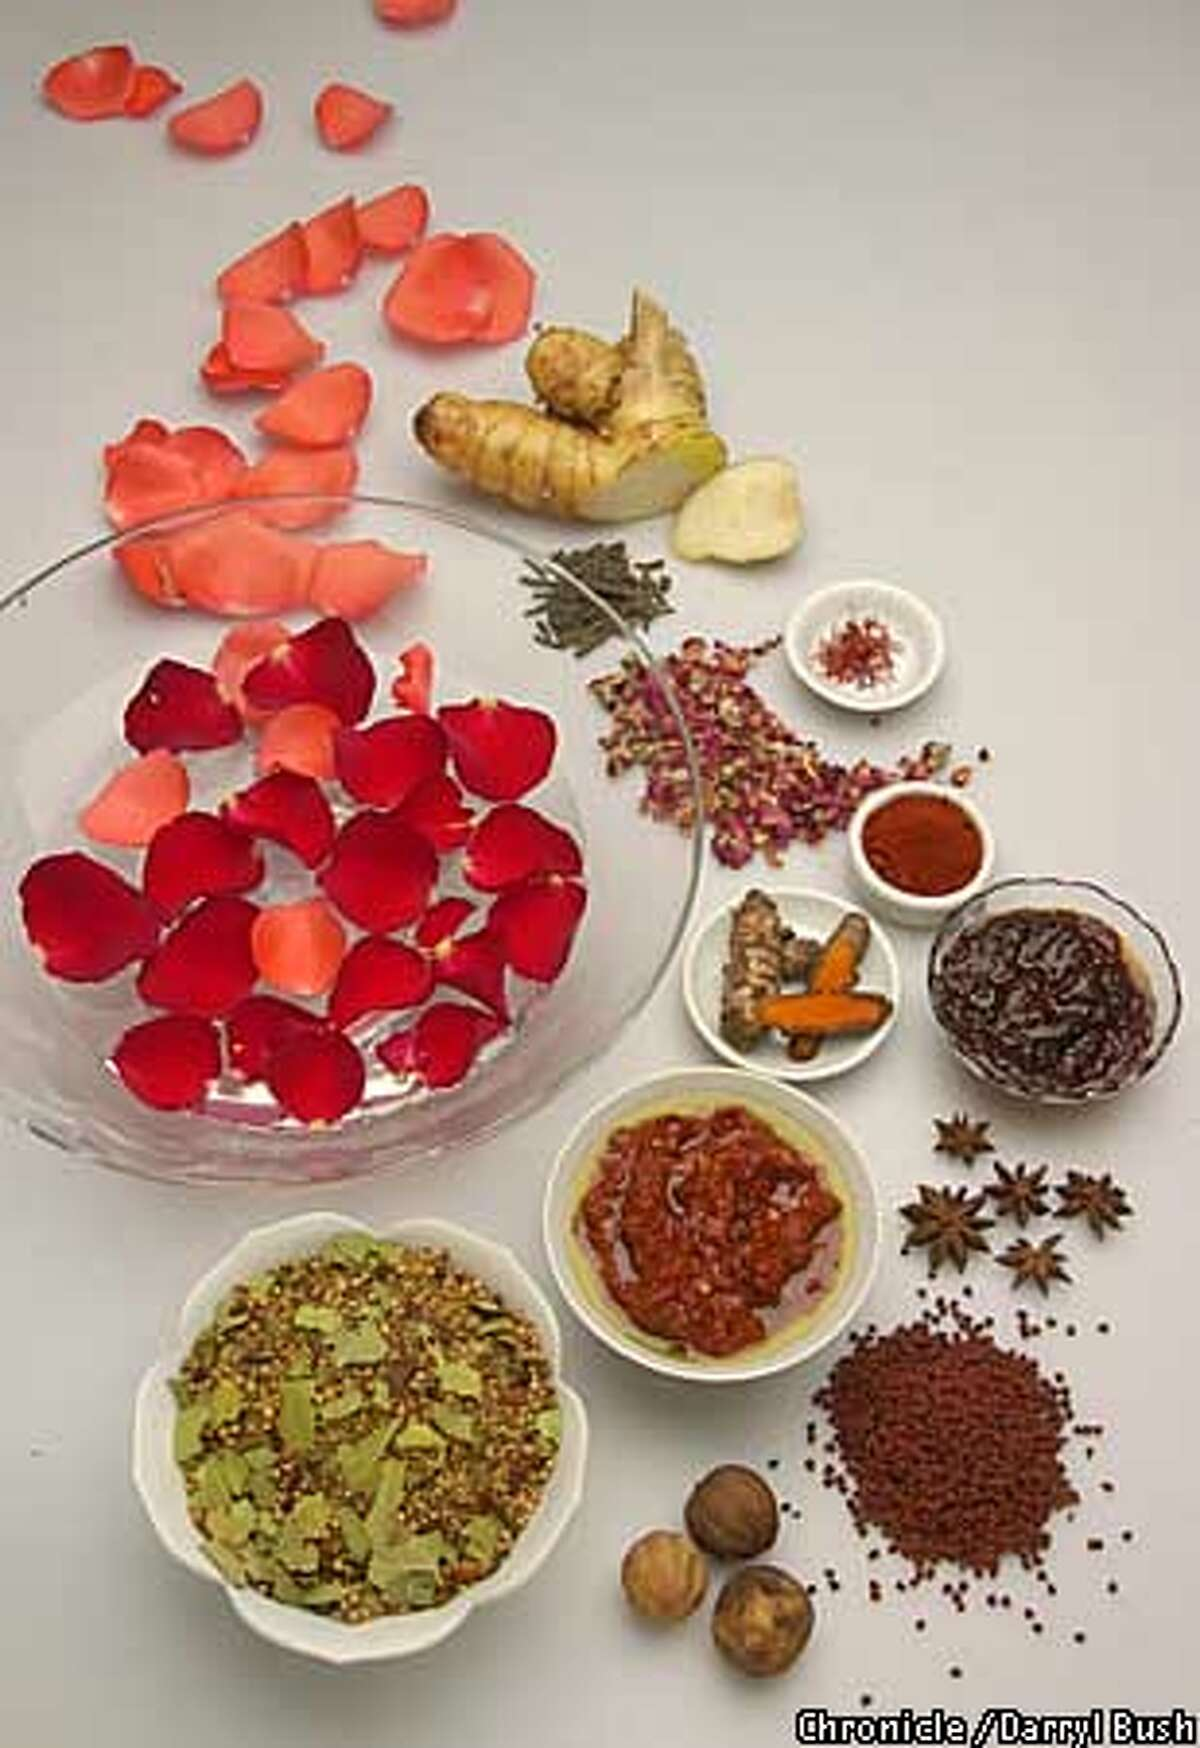 A bowl of rose water and rose petals is surrounded by exotic spices, from top to bottom: galanga root, long pepper (green), saffron (bowl), dried rose petals (left of saffron), pimenton de la vera (red in bowl), fresh turmeric (white bowl), nam prik pao (clear bowl), star anise (star shaped), herissa (bowl left of star anise), achiote (pebble shaped), garam masala (large white bowl), dried oranges (bottom center). Chronicle Photo by Darryl Bush Food Styling by Noel Advincula